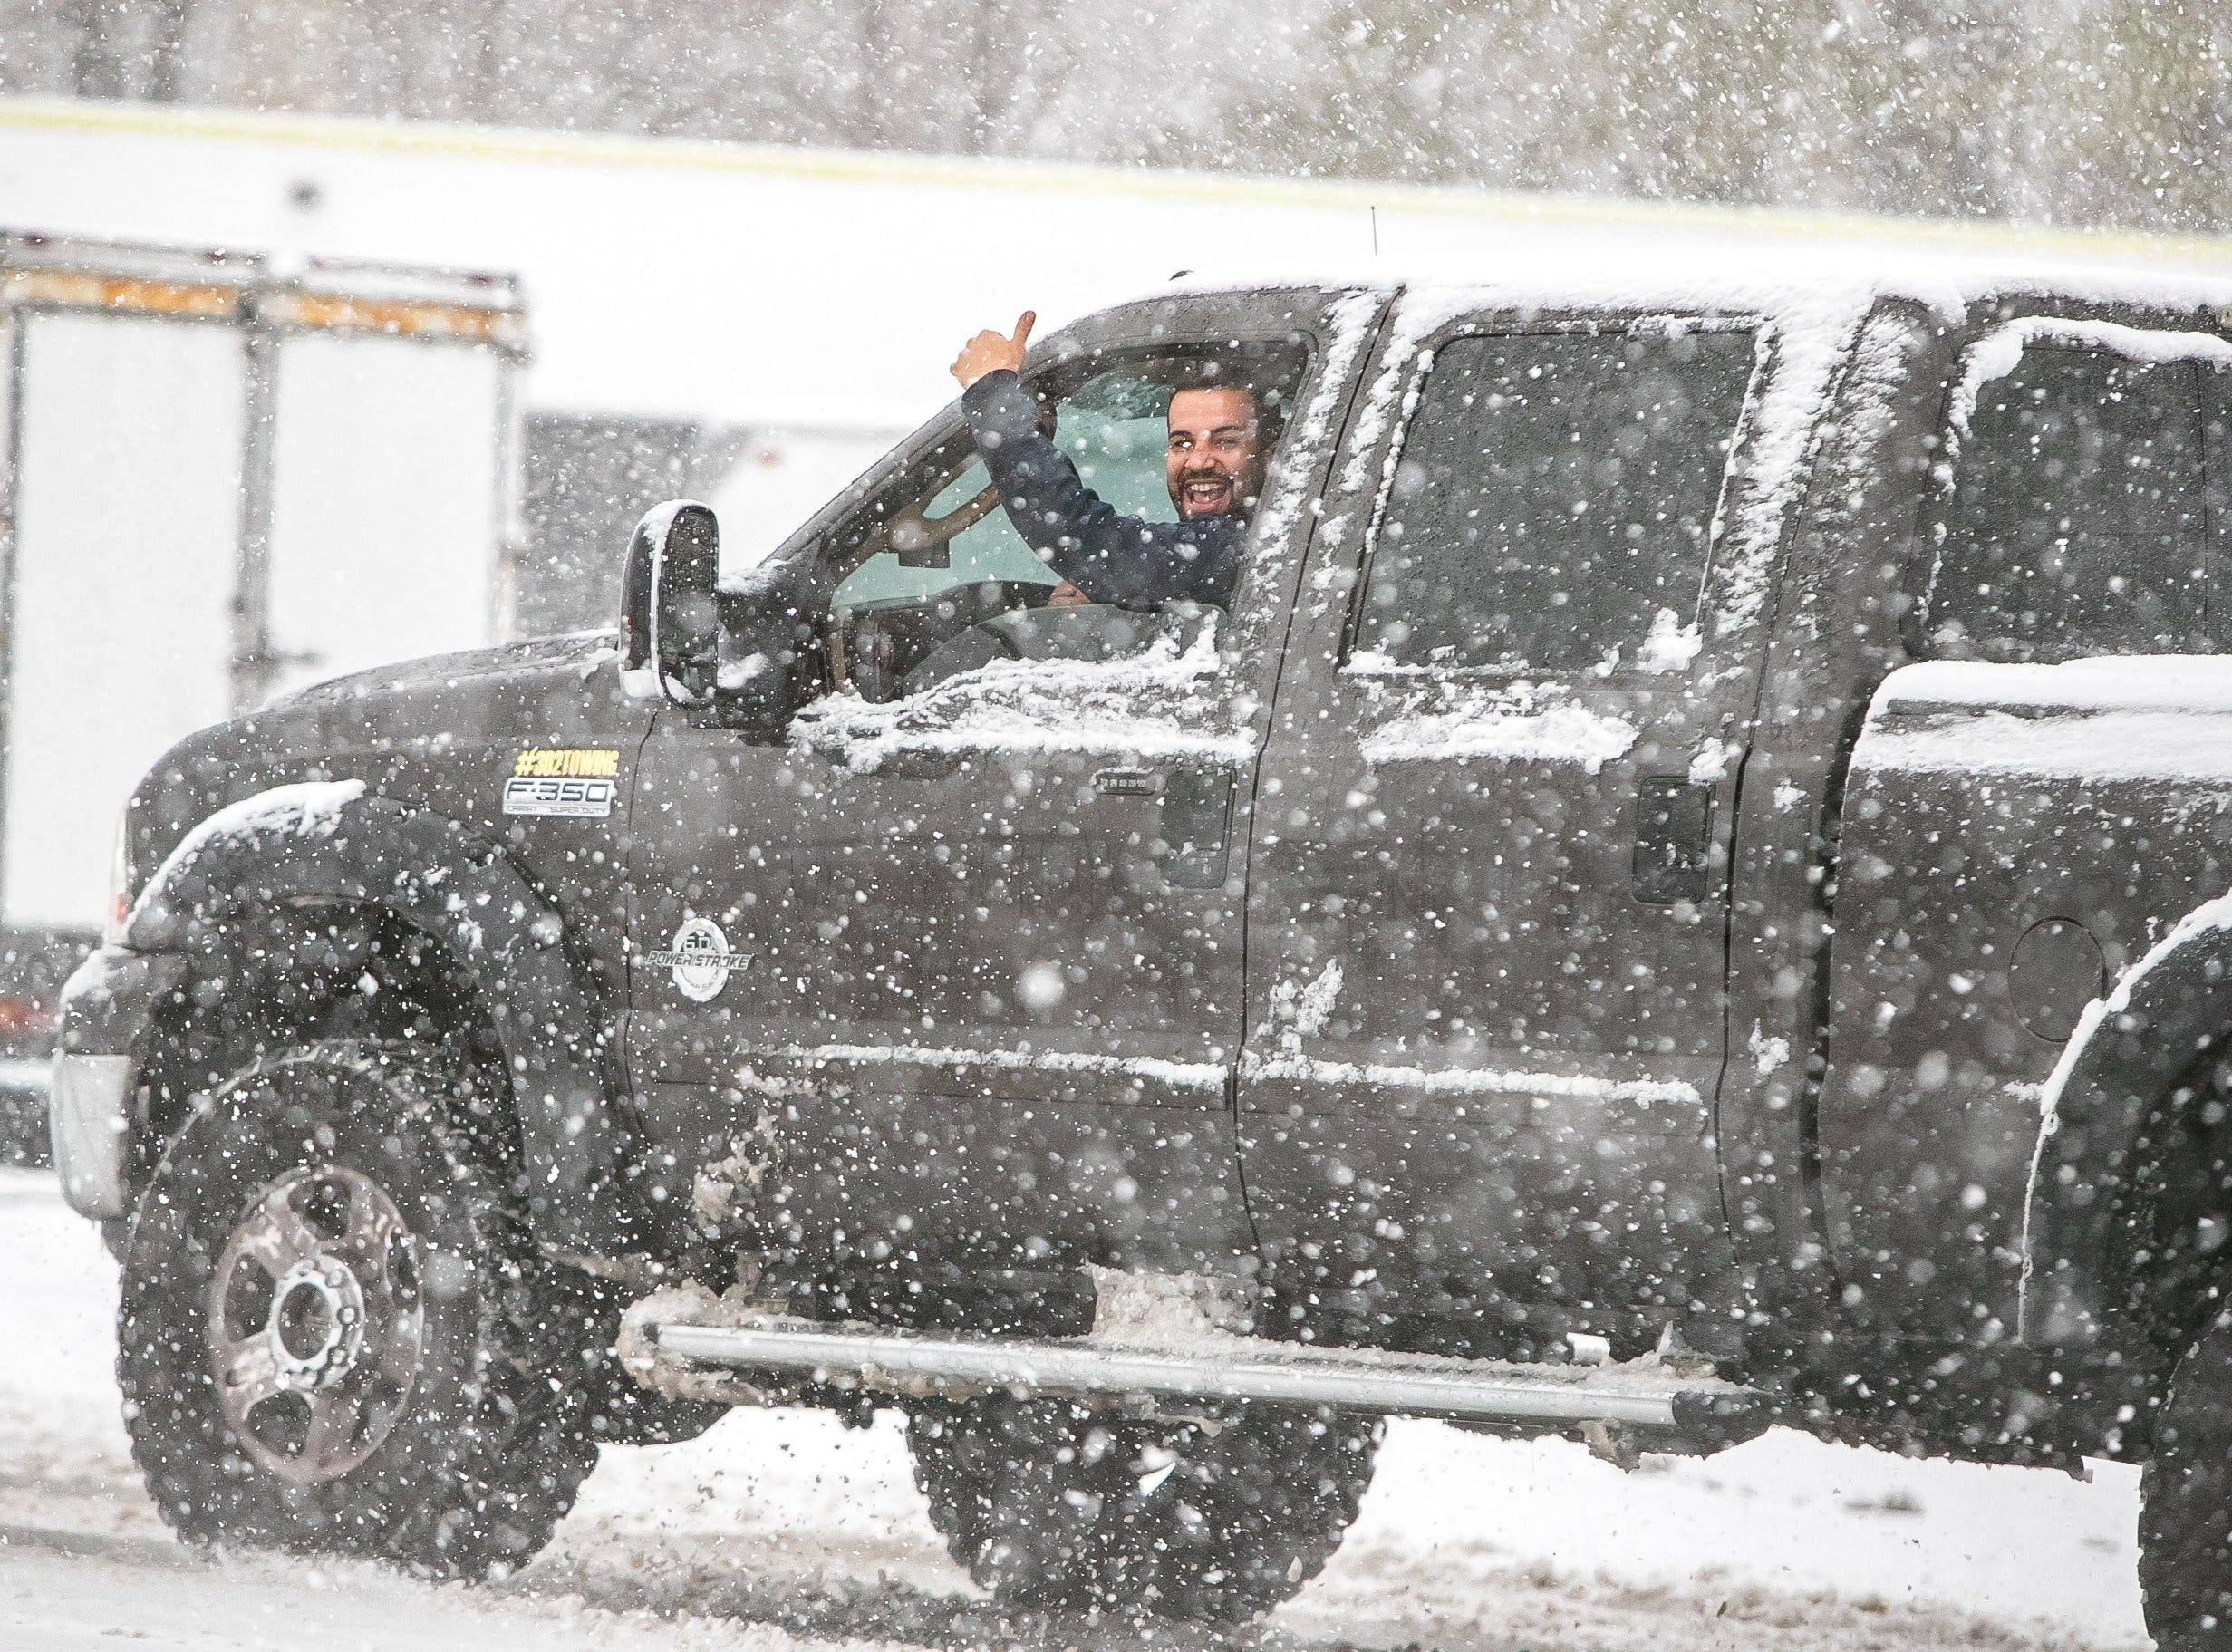 A driver gives a thumbs up in the snow as he drives along Lancaster Pike in Hockessin.